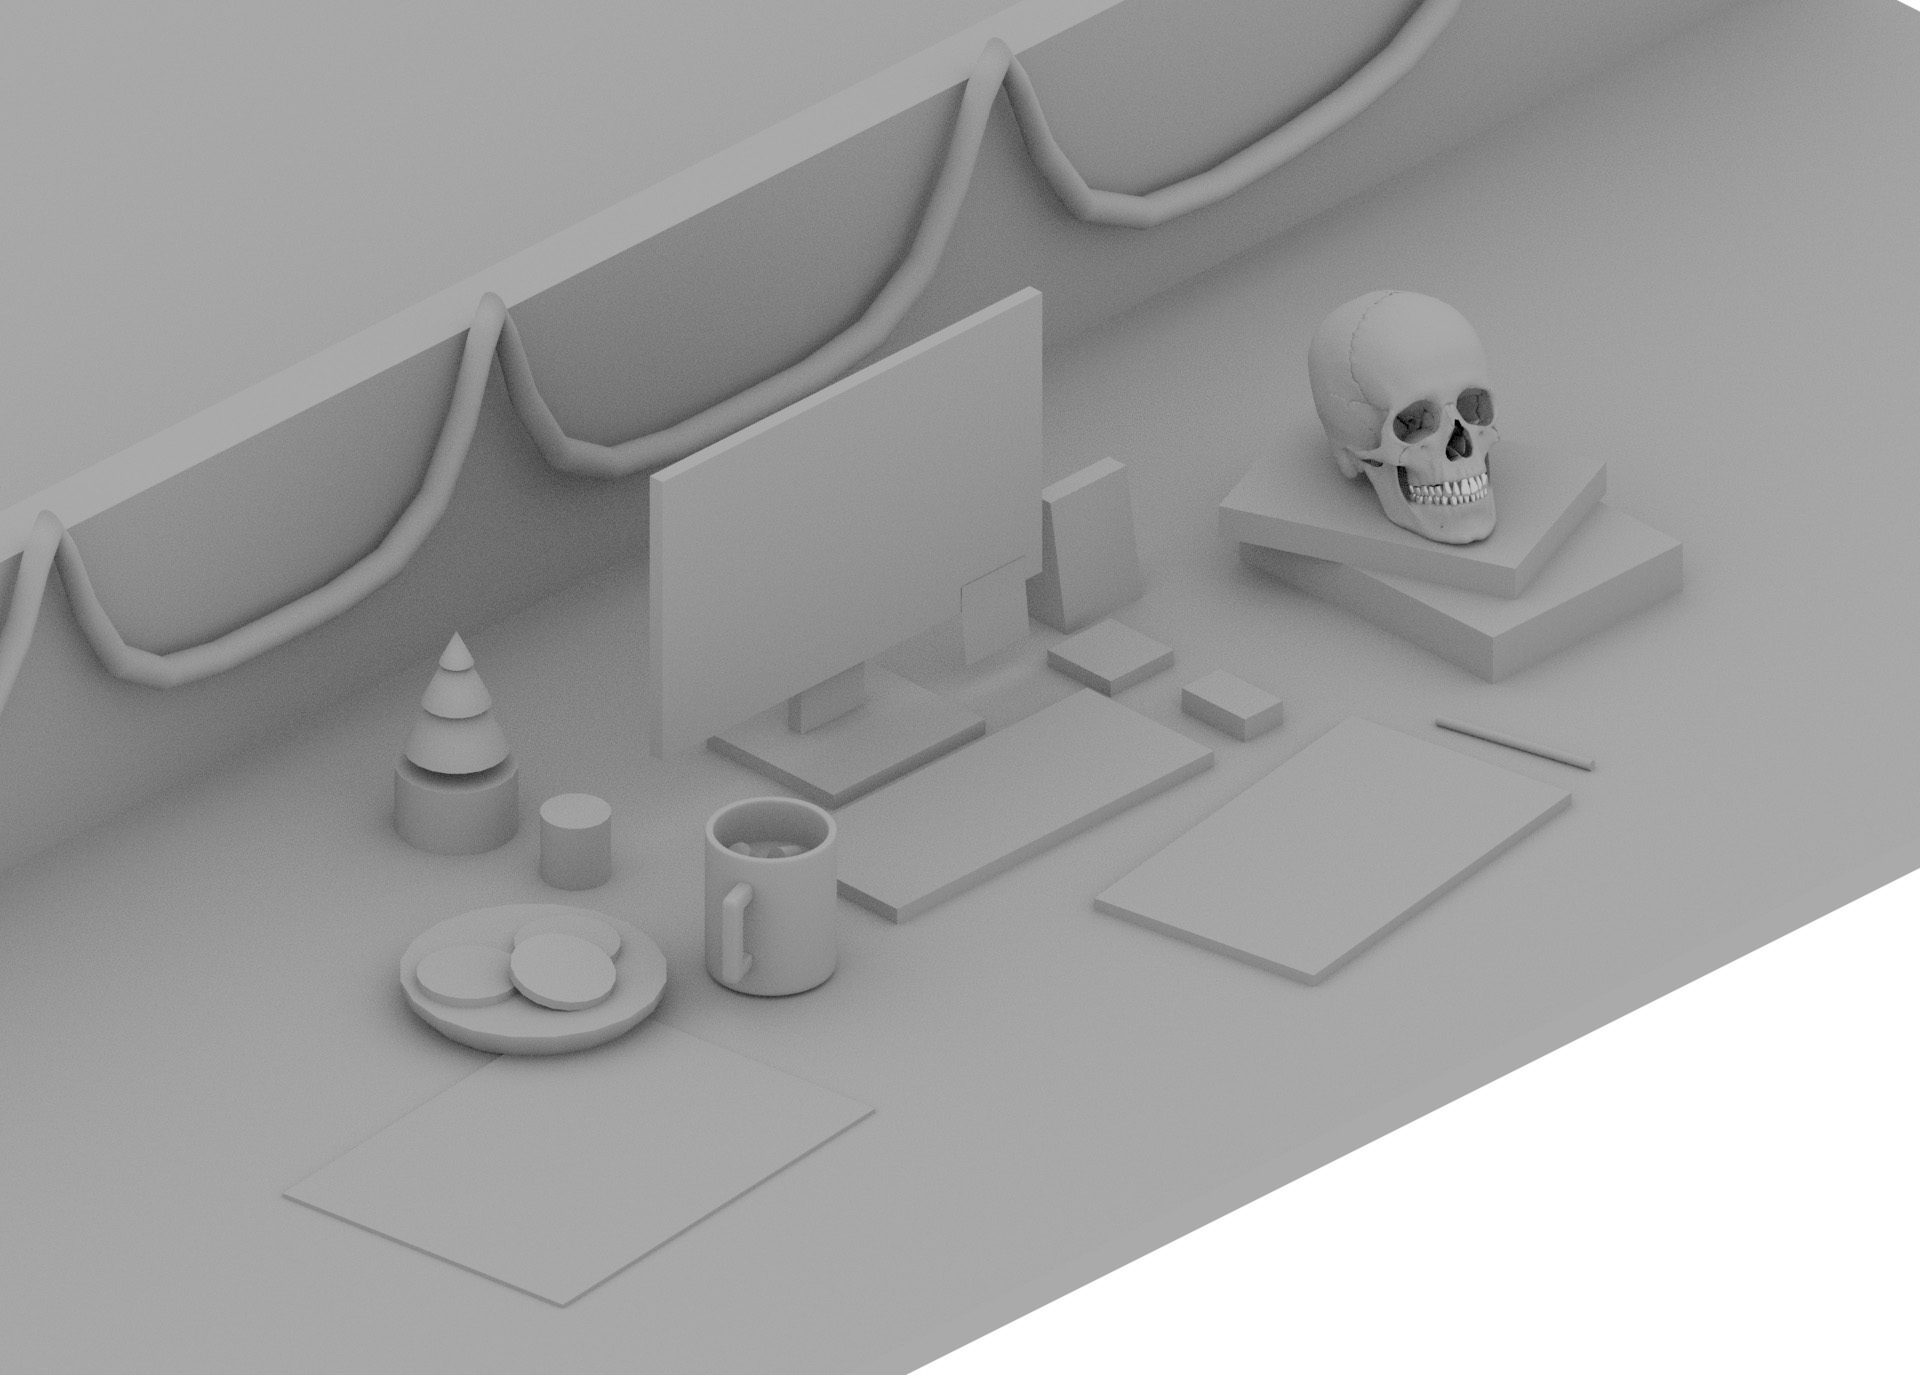 axs-studio-holiday-card-3d-mockup-for-sketch